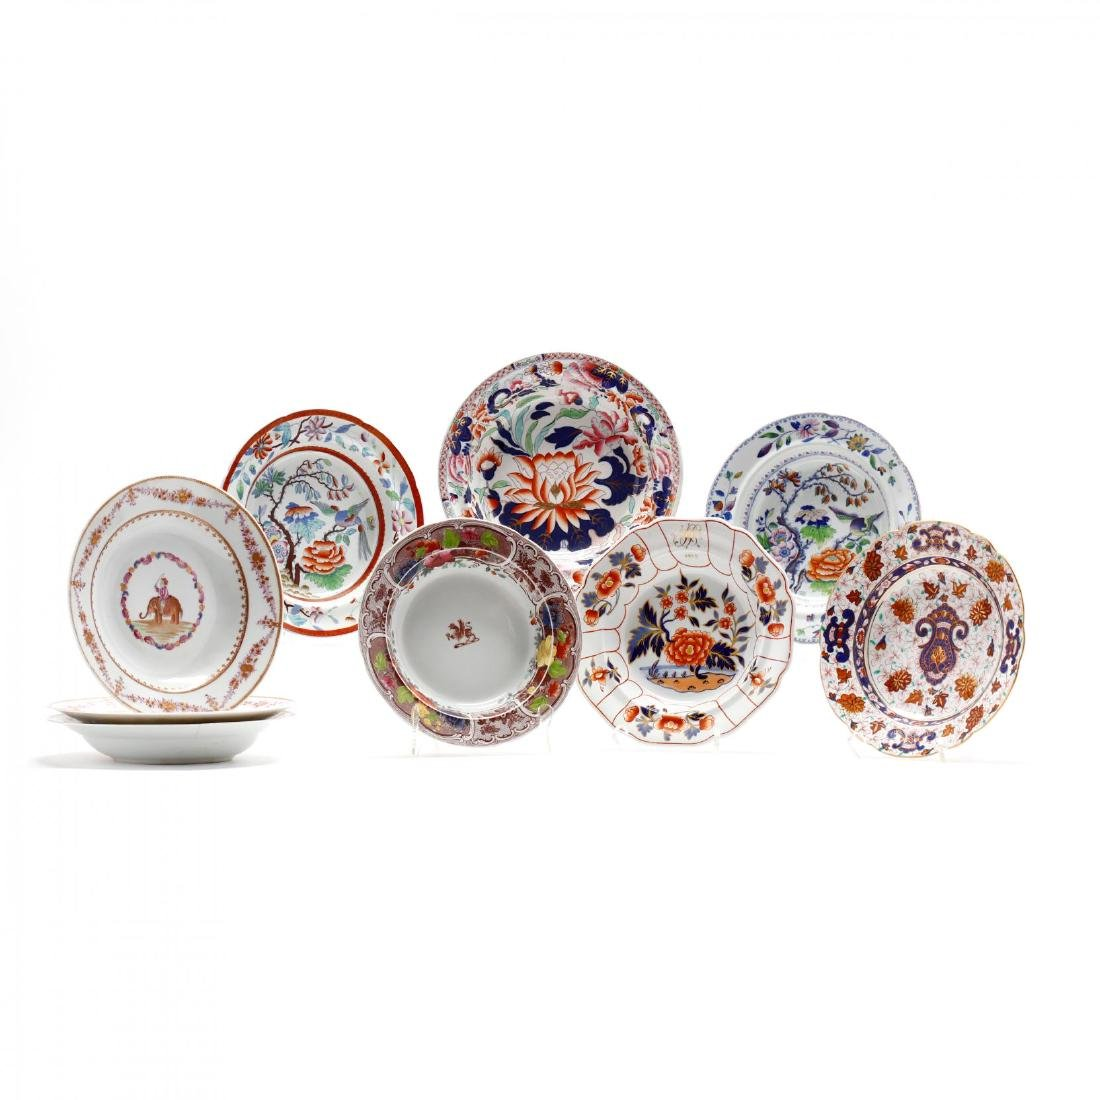 A Collection of Antique Soup Bowls